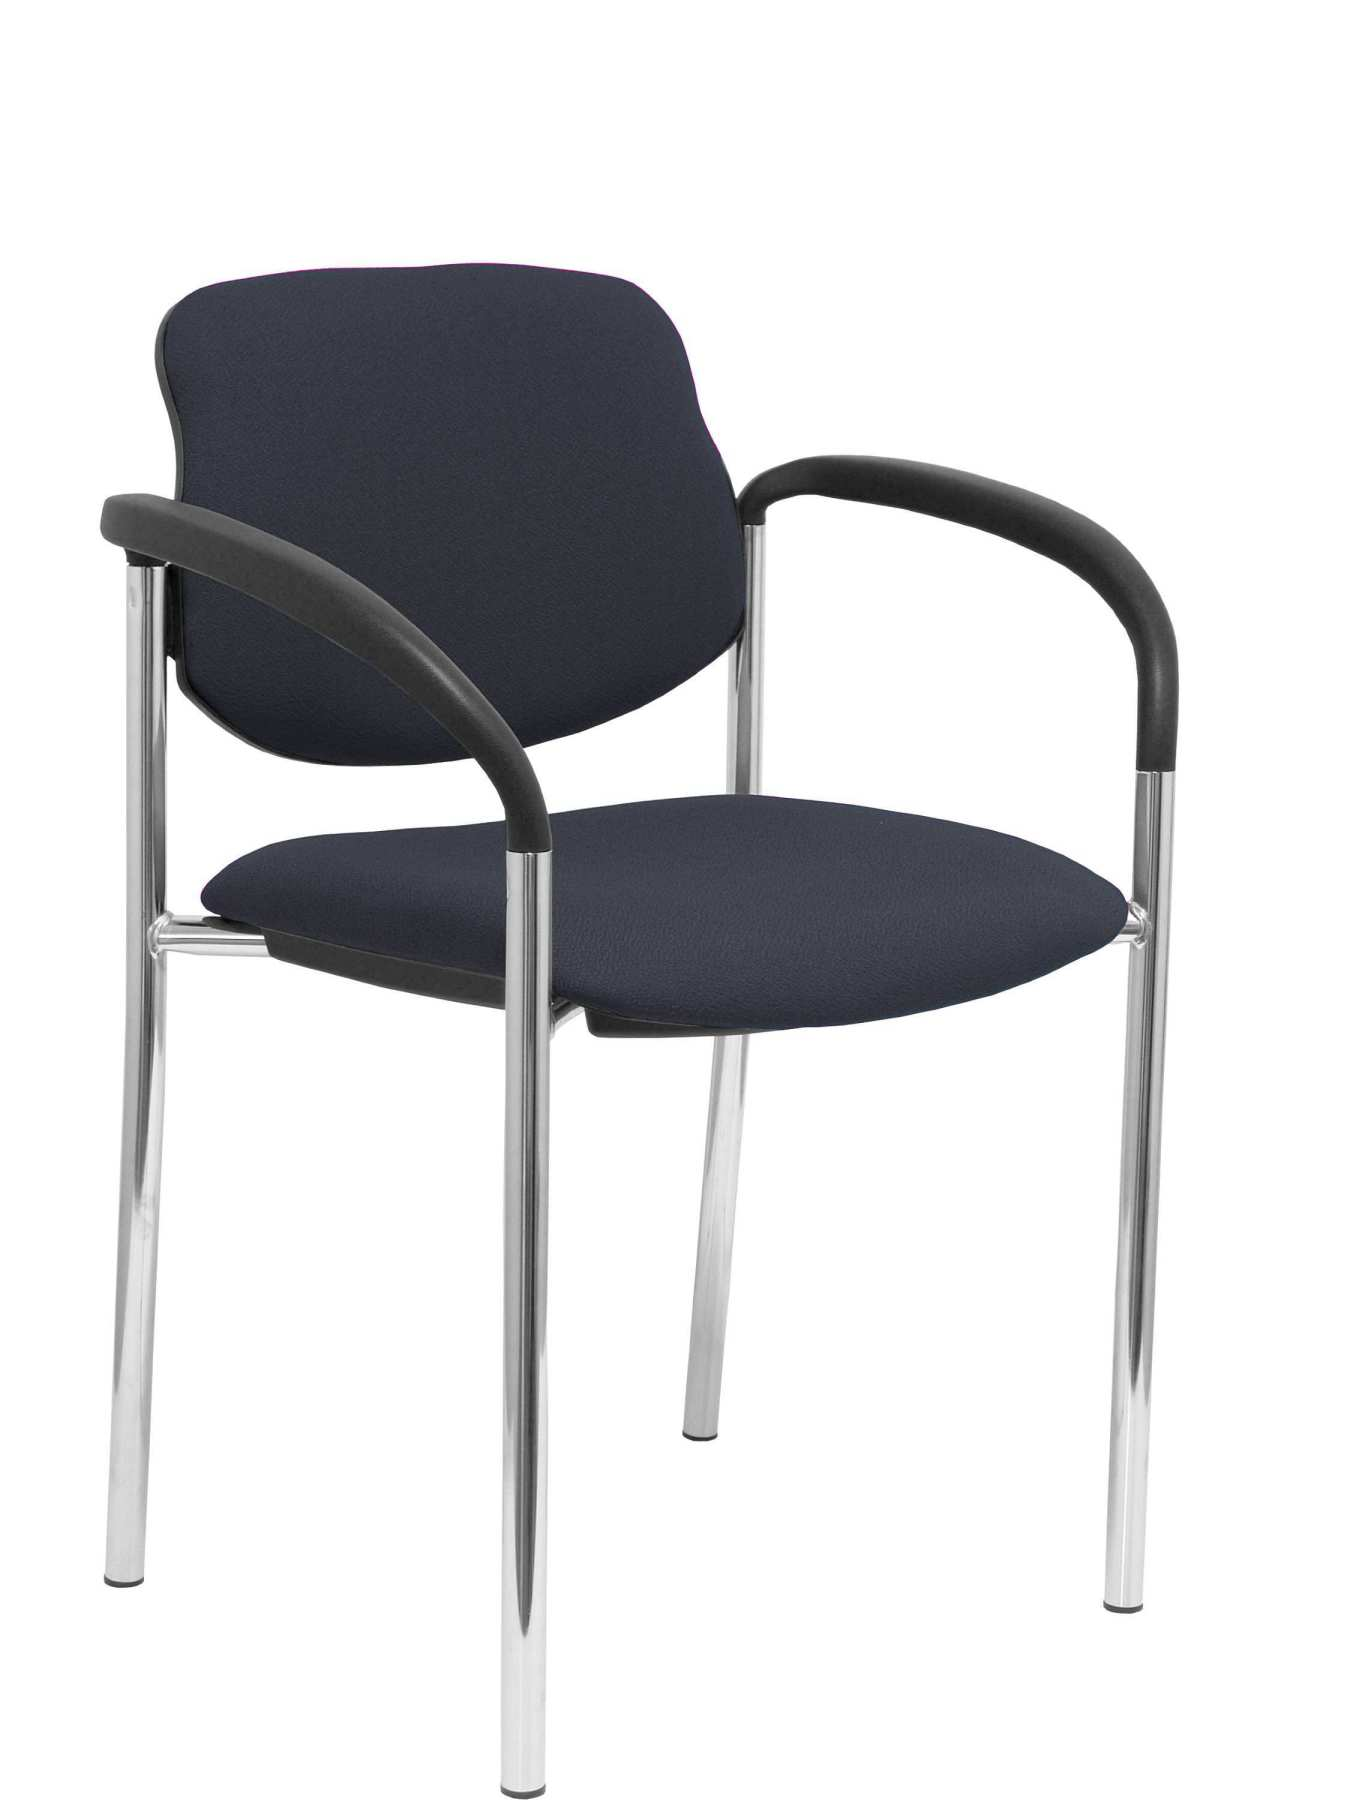 Confident Chair 4-leg And Estructrua Chrome Arms-Seat And Back Upholstered In Fabric BALI Gray Osc